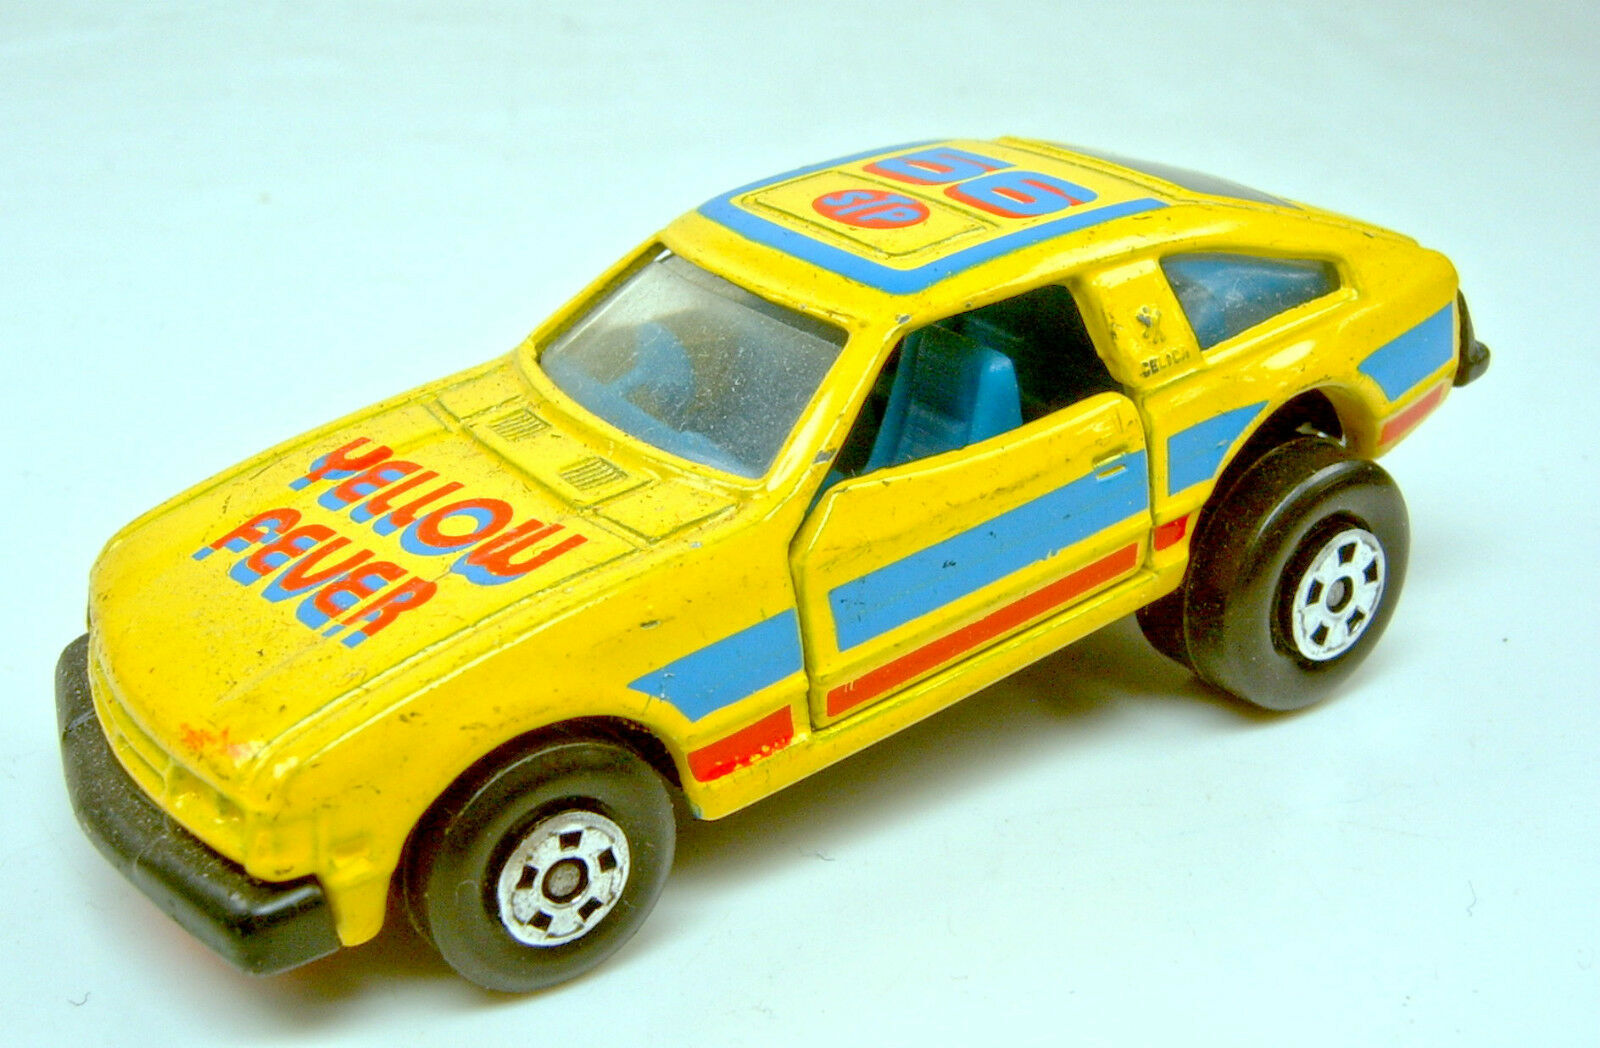 Matchbox Superfast Nr.25D Toyota Celica yellow yellow yellow  Yellow Fever  Hot Rod f323b8